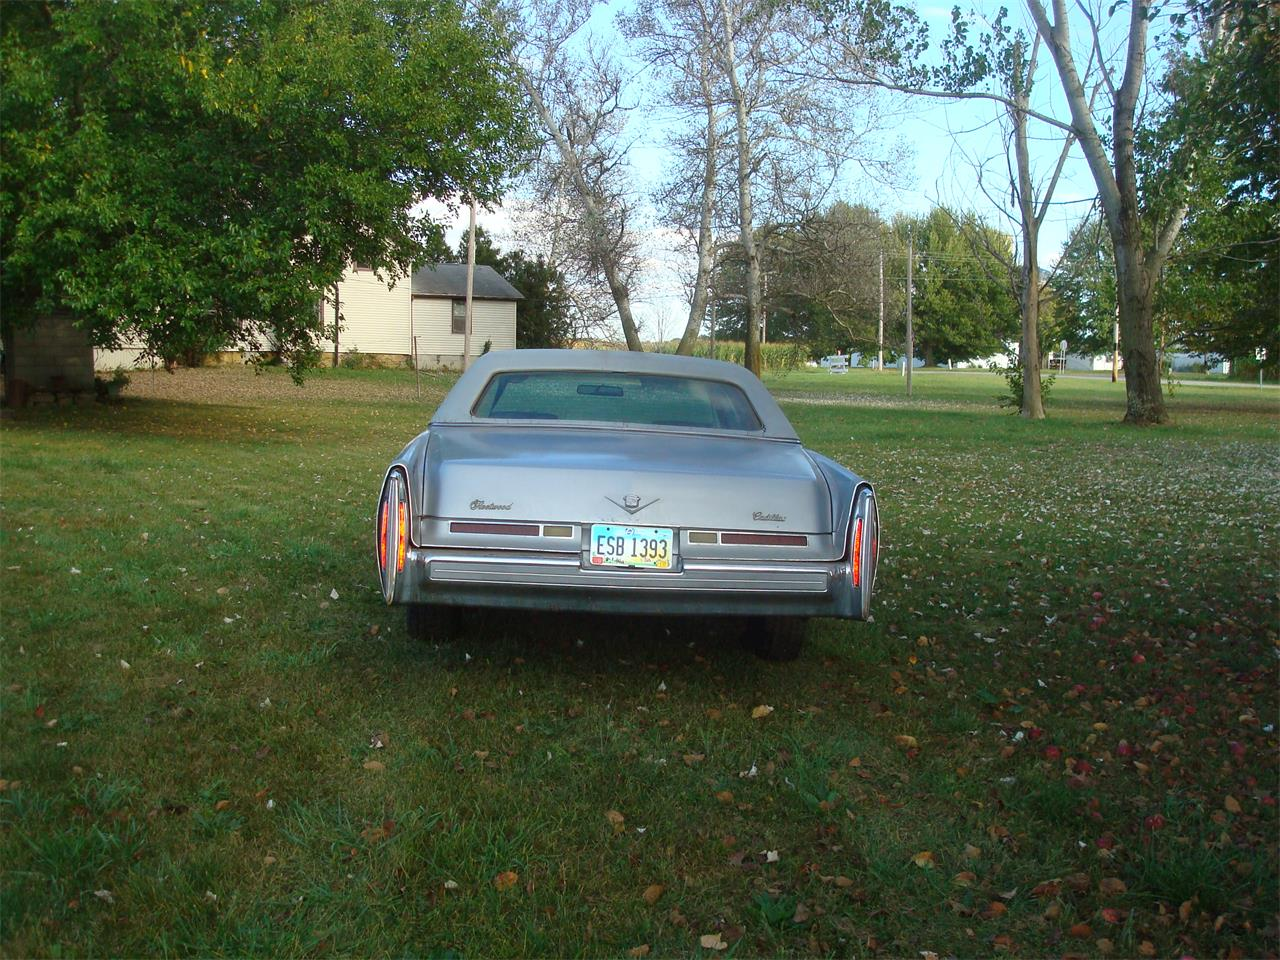 1976 Cadillac Fleetwood Brougham d'Elegance for sale in New London, OH – photo 5